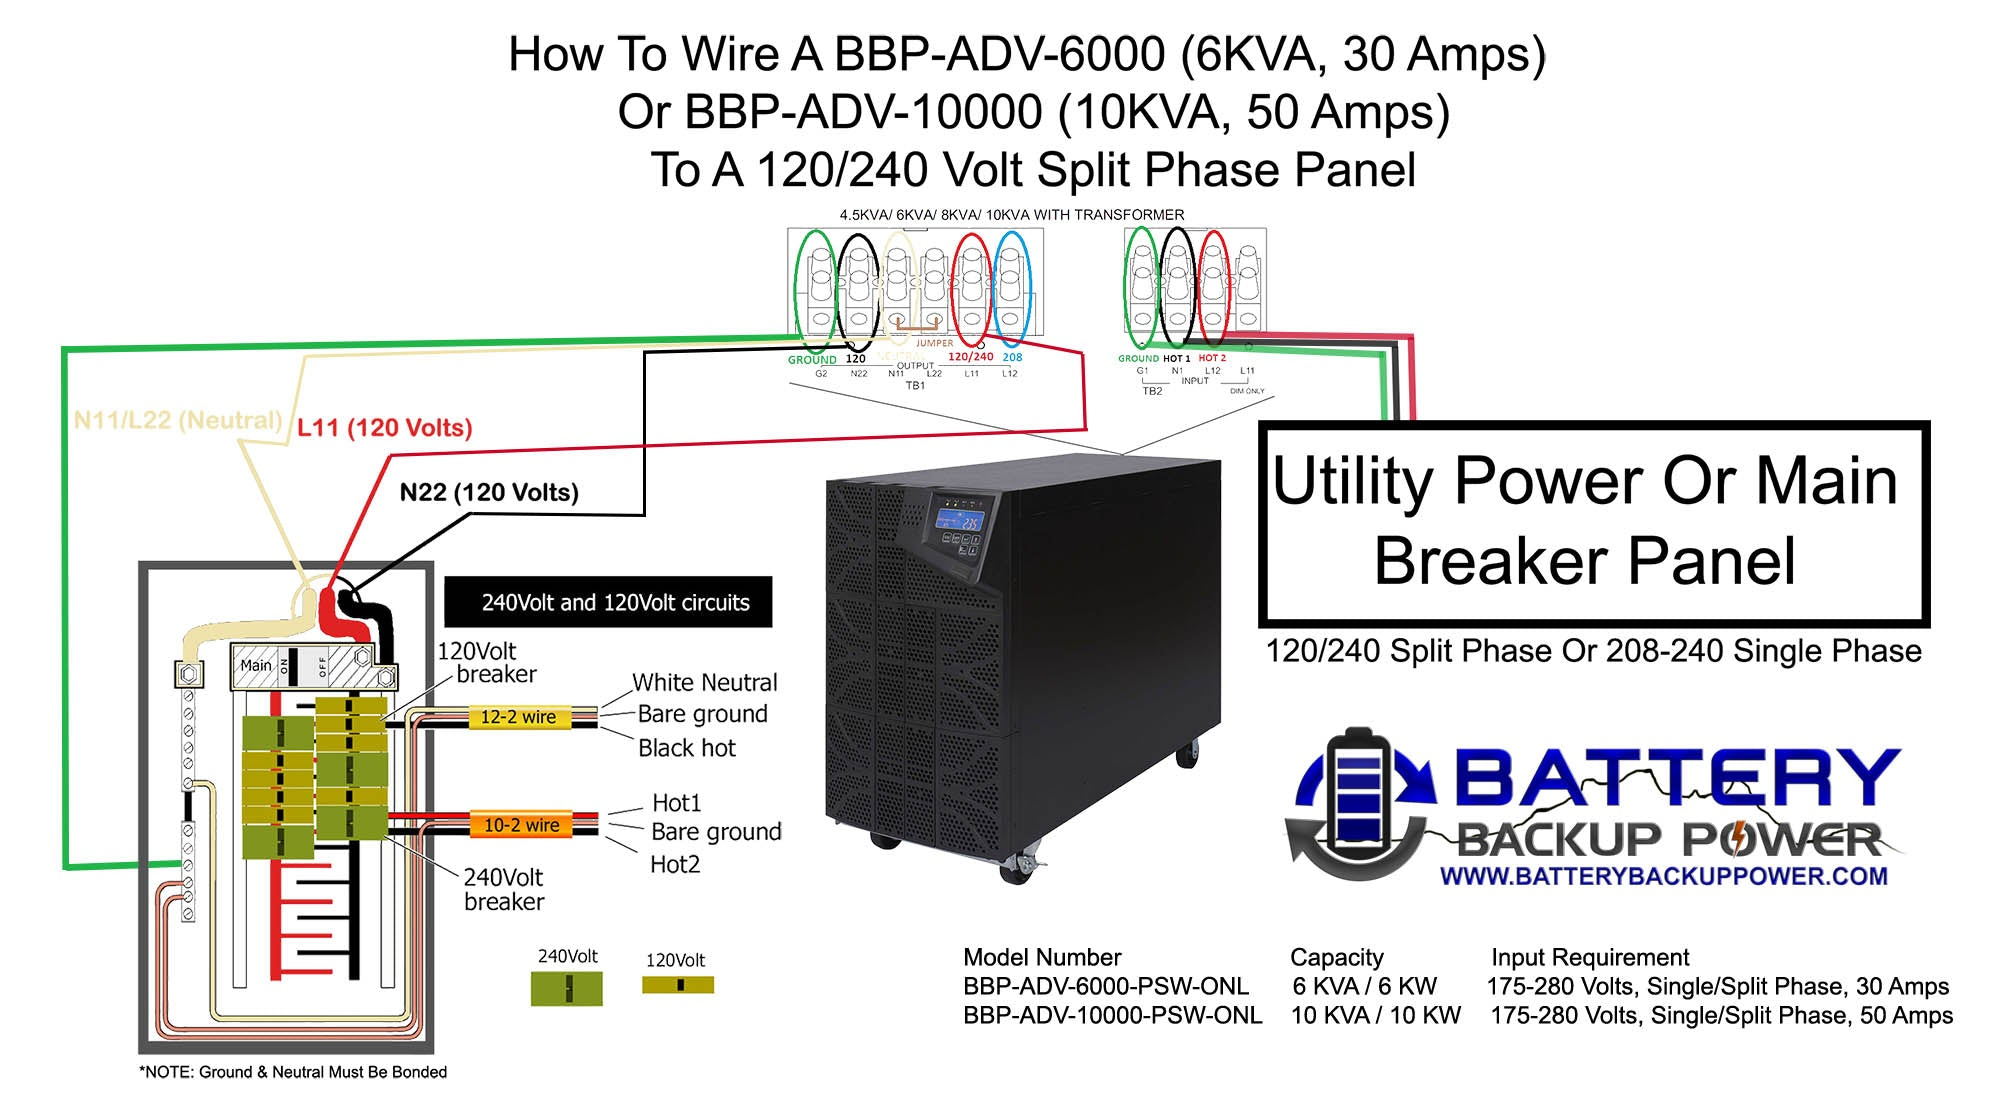 [DIAGRAM_38IU]  Wiring Diagrams For Hardwire UPS – Battery Backup Power, Inc. | Ups Battery Wiring Diagram |  | Battery Backup Power, Inc.